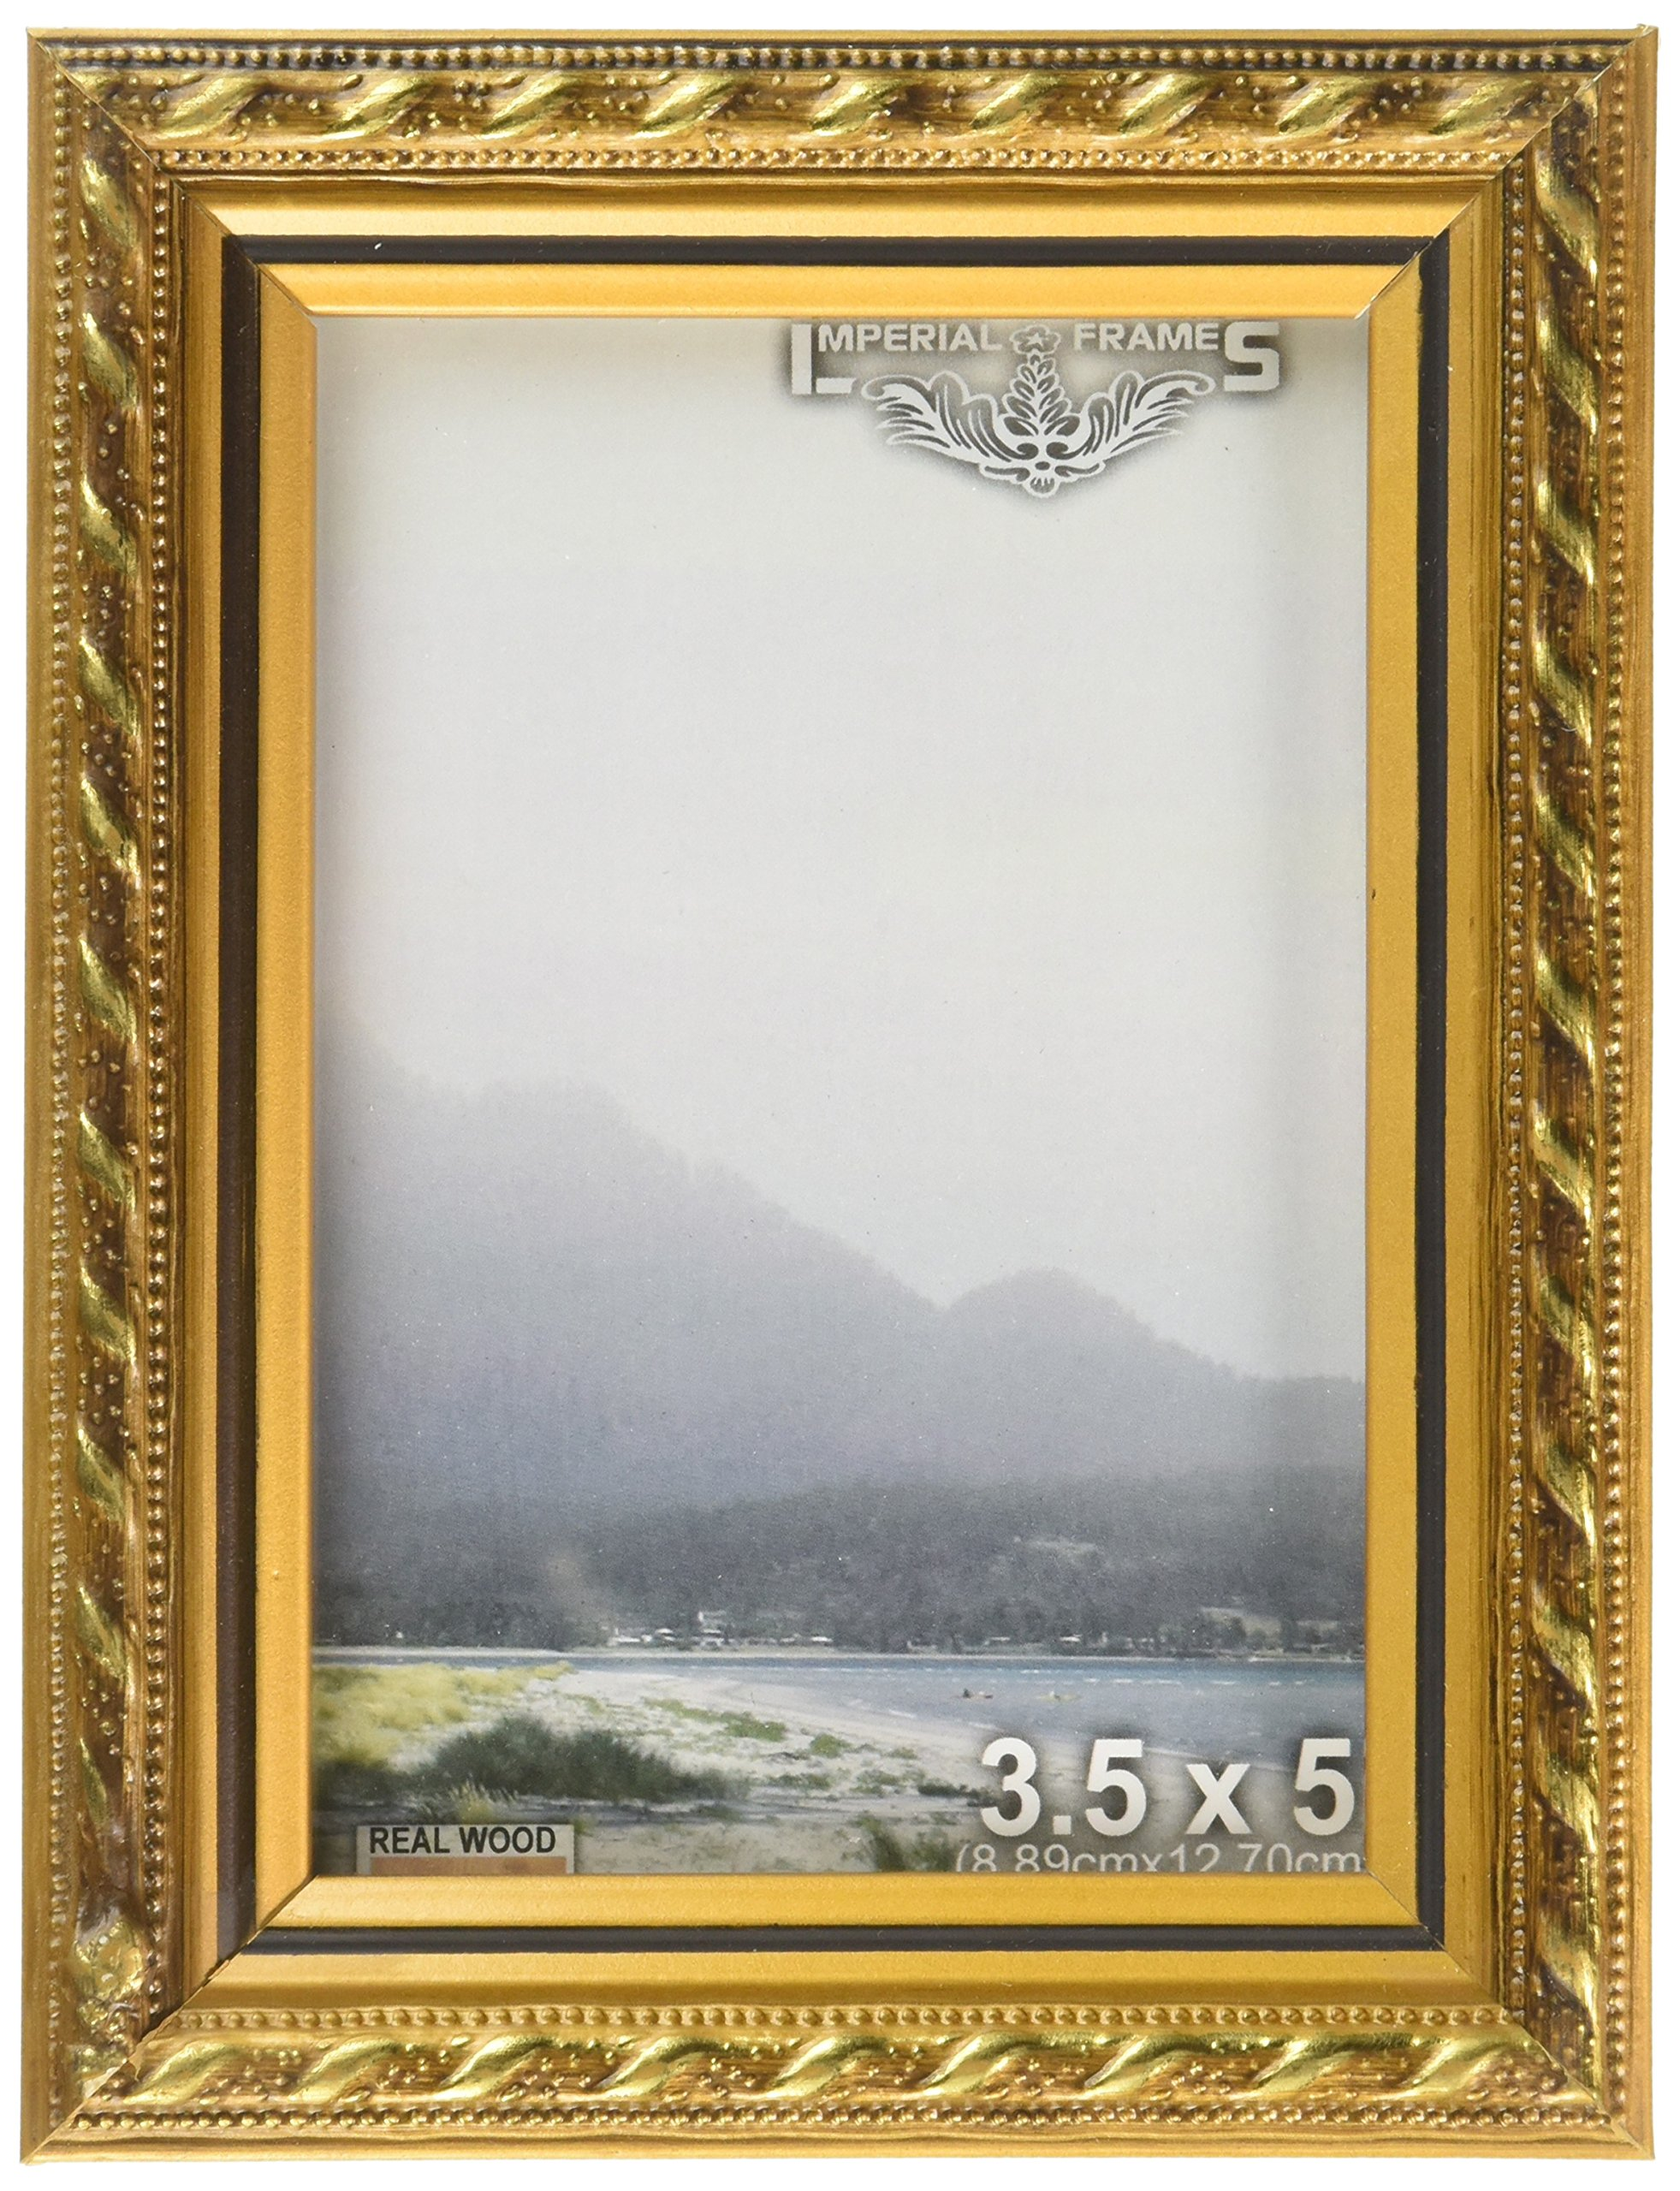 MyFrameStore Imperial Frames 16 by 20-Inch/20 by 16-Inch Picture/Photo Frame, Thin Fancy Rope Shaped Gold Molding